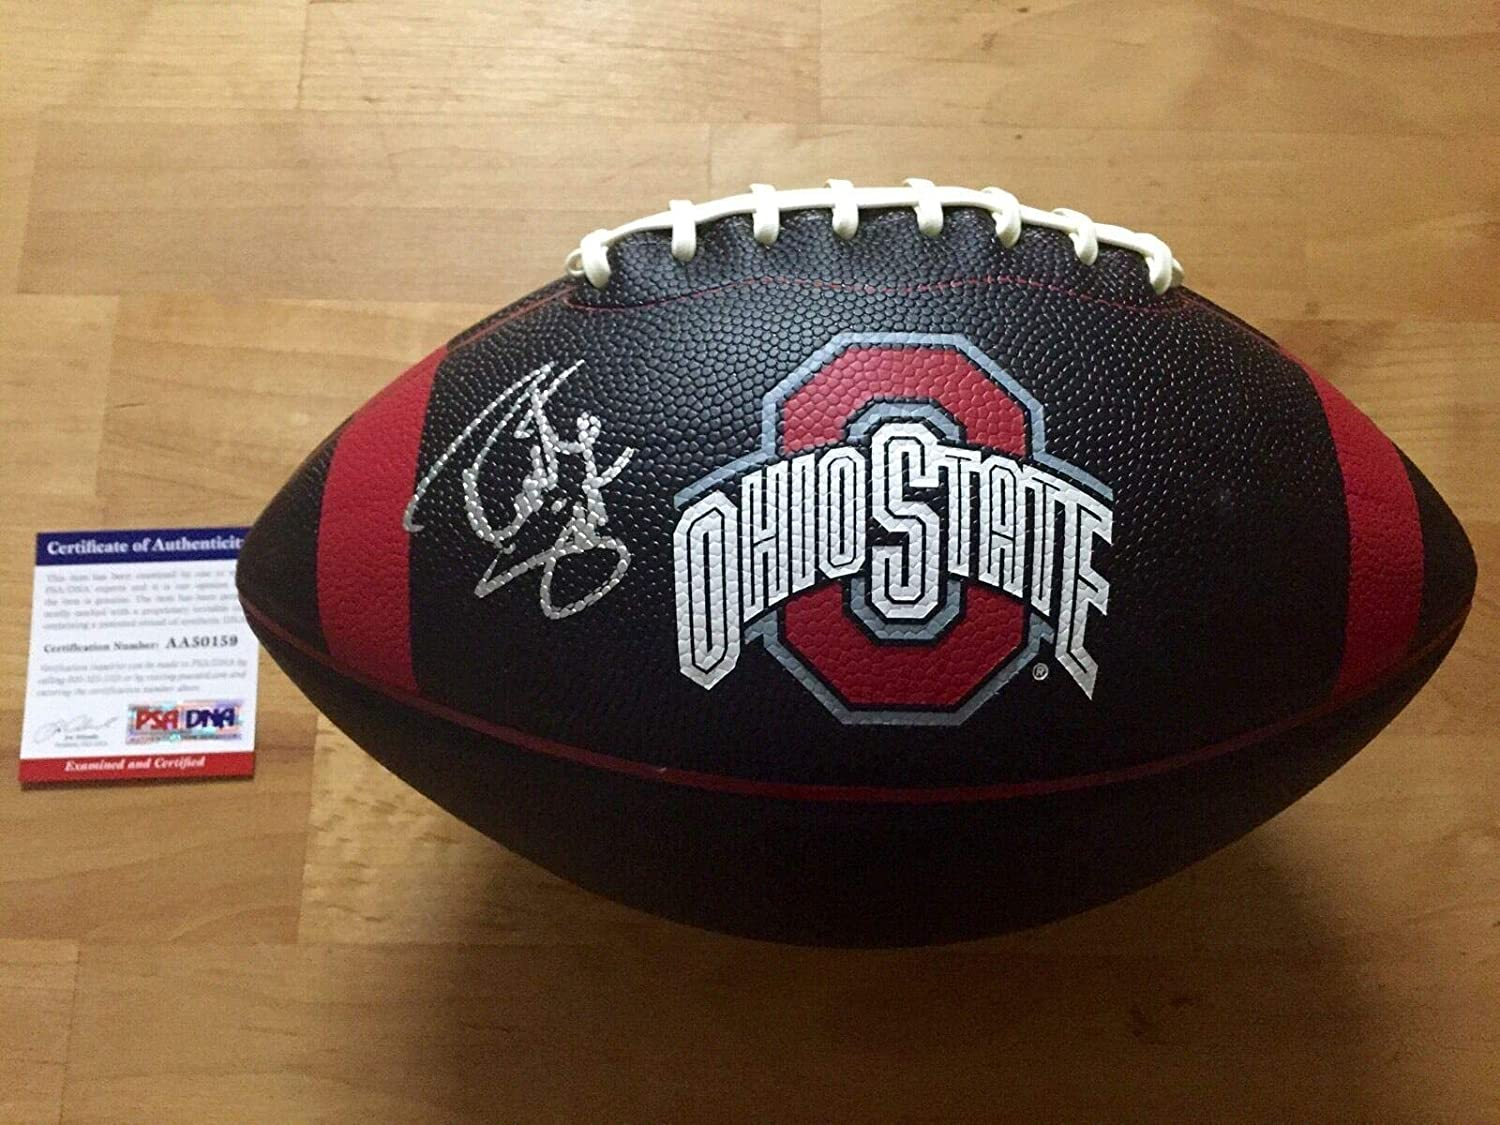 Robert Smith Signed Ohio State Buckeyes Black Logo Football Coa - PSA/DNA Certified - Autographed College Footballs